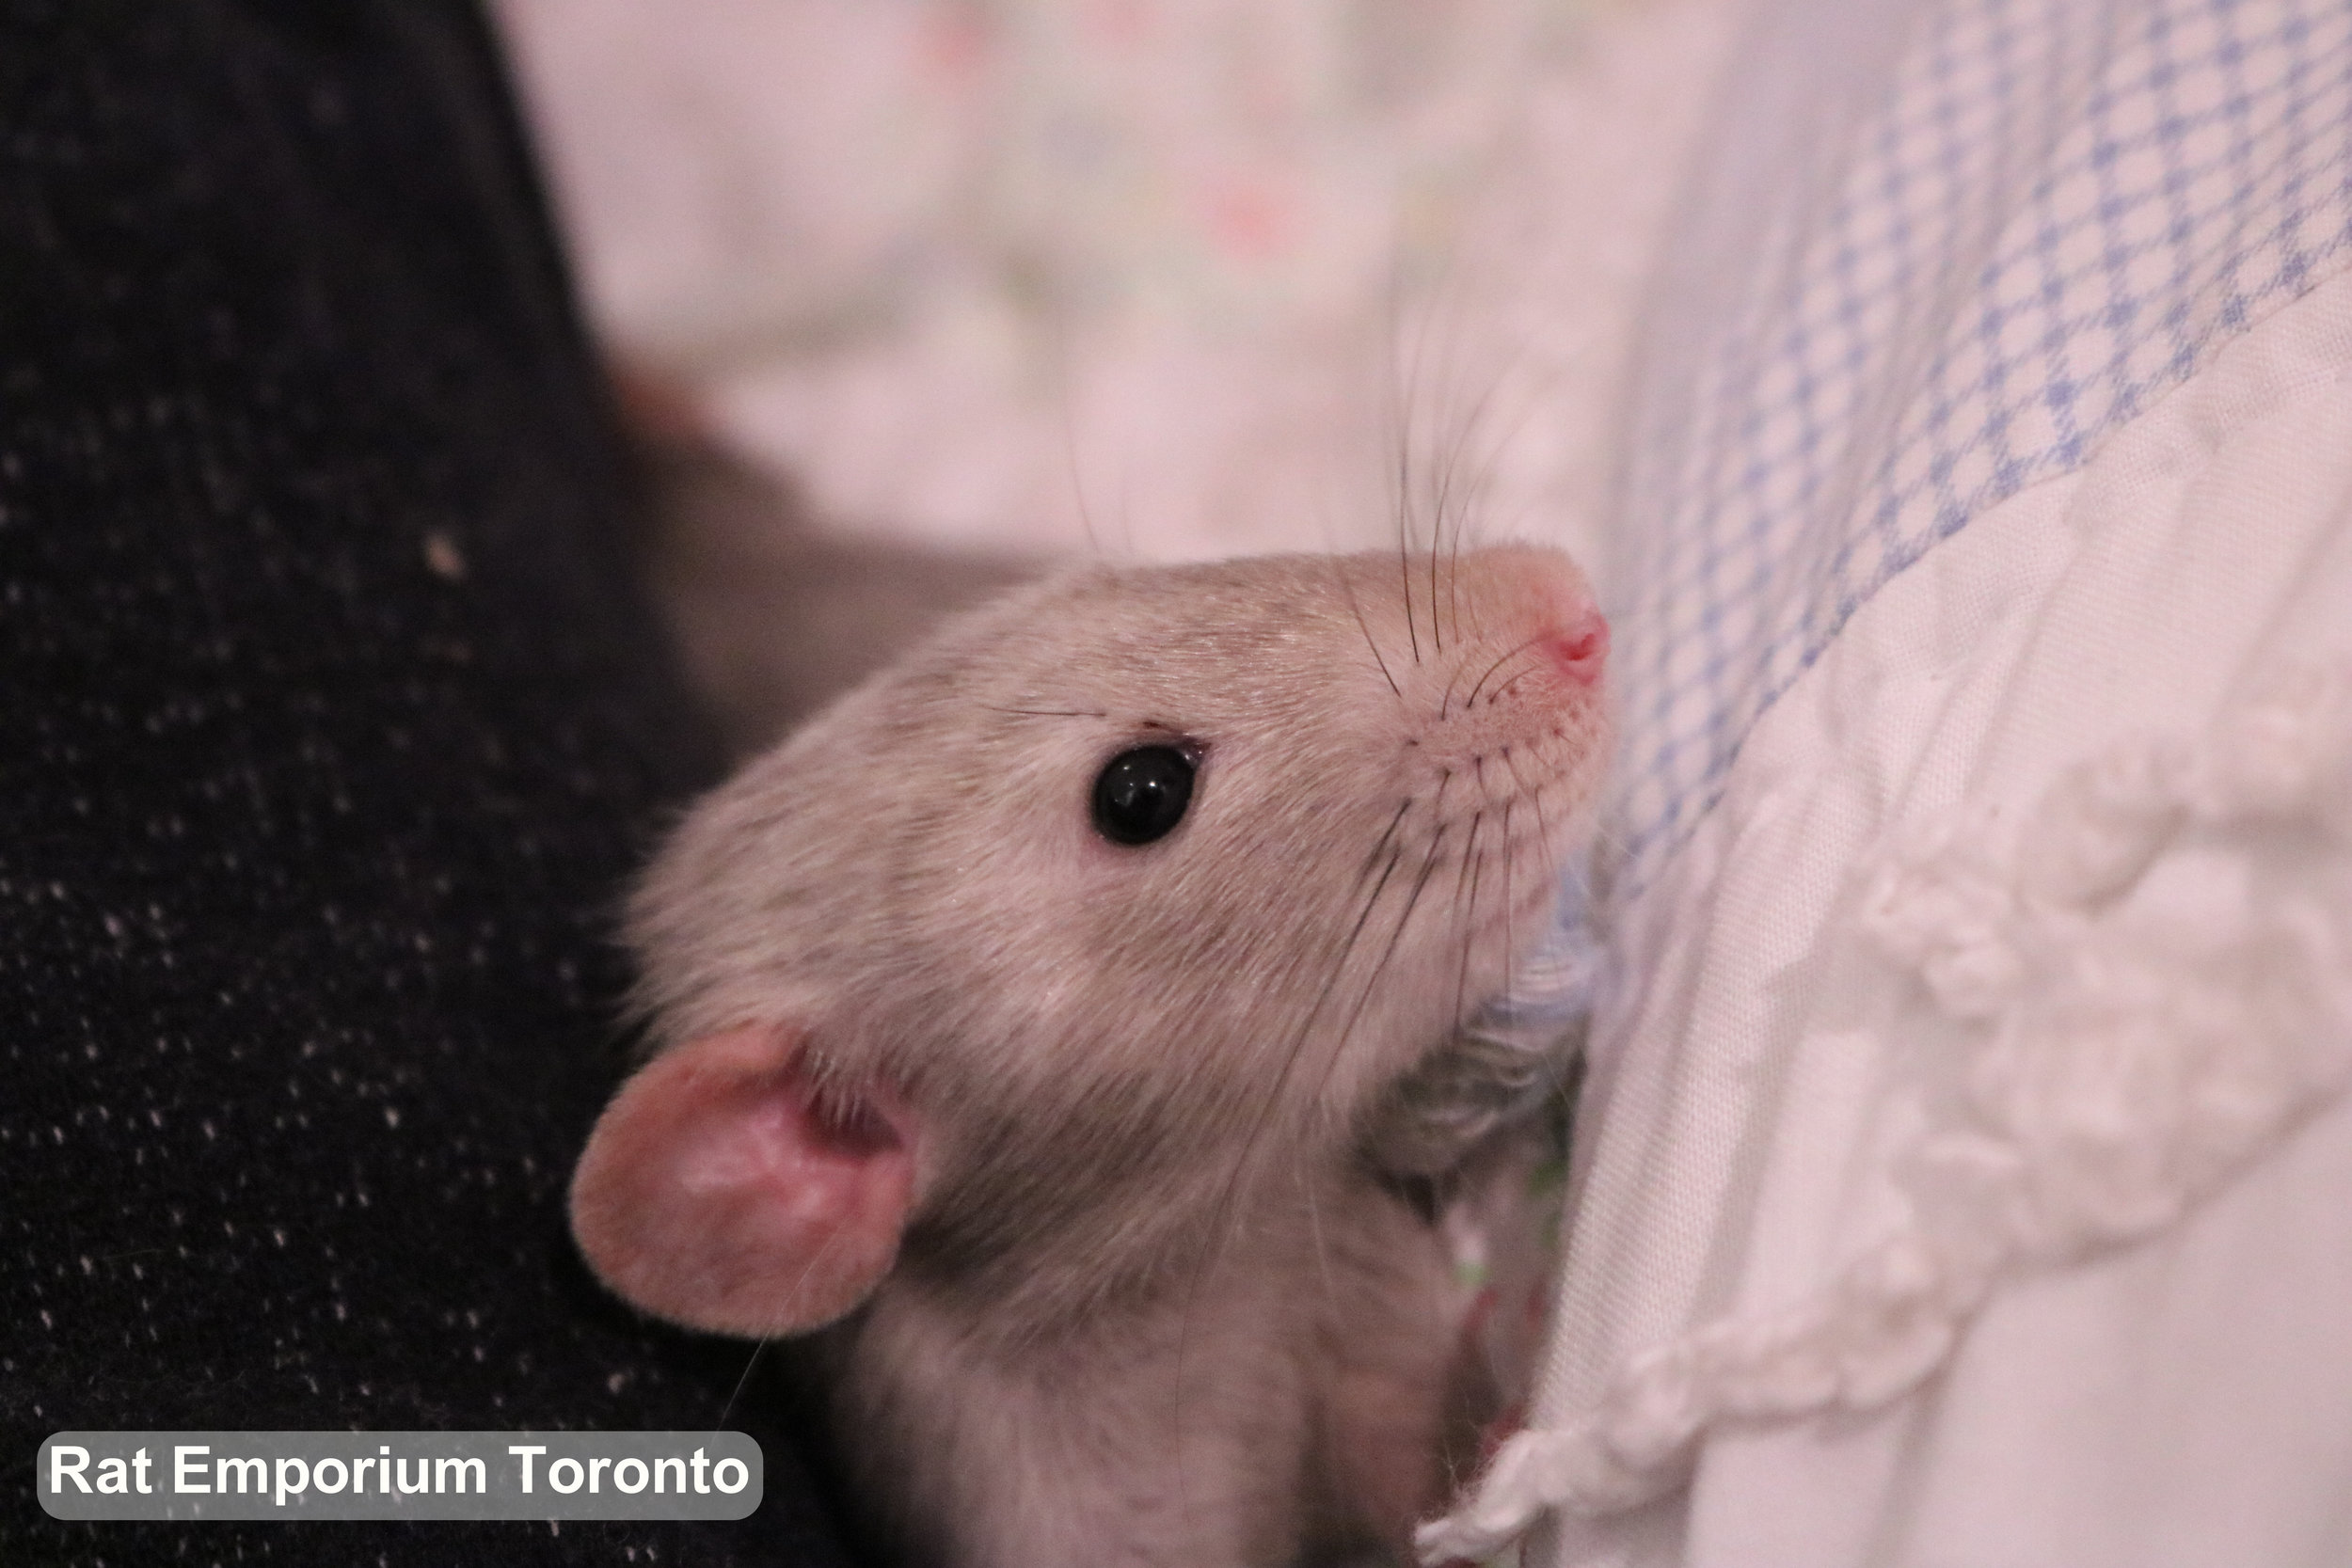 black eyed marten dumbo rat - born at Rat Emporium Toronto - adopt pet rats Toronto, Ontario Canada - rat breeder - Toronto rats - overcoming rat problems and stigma with cute pet rats